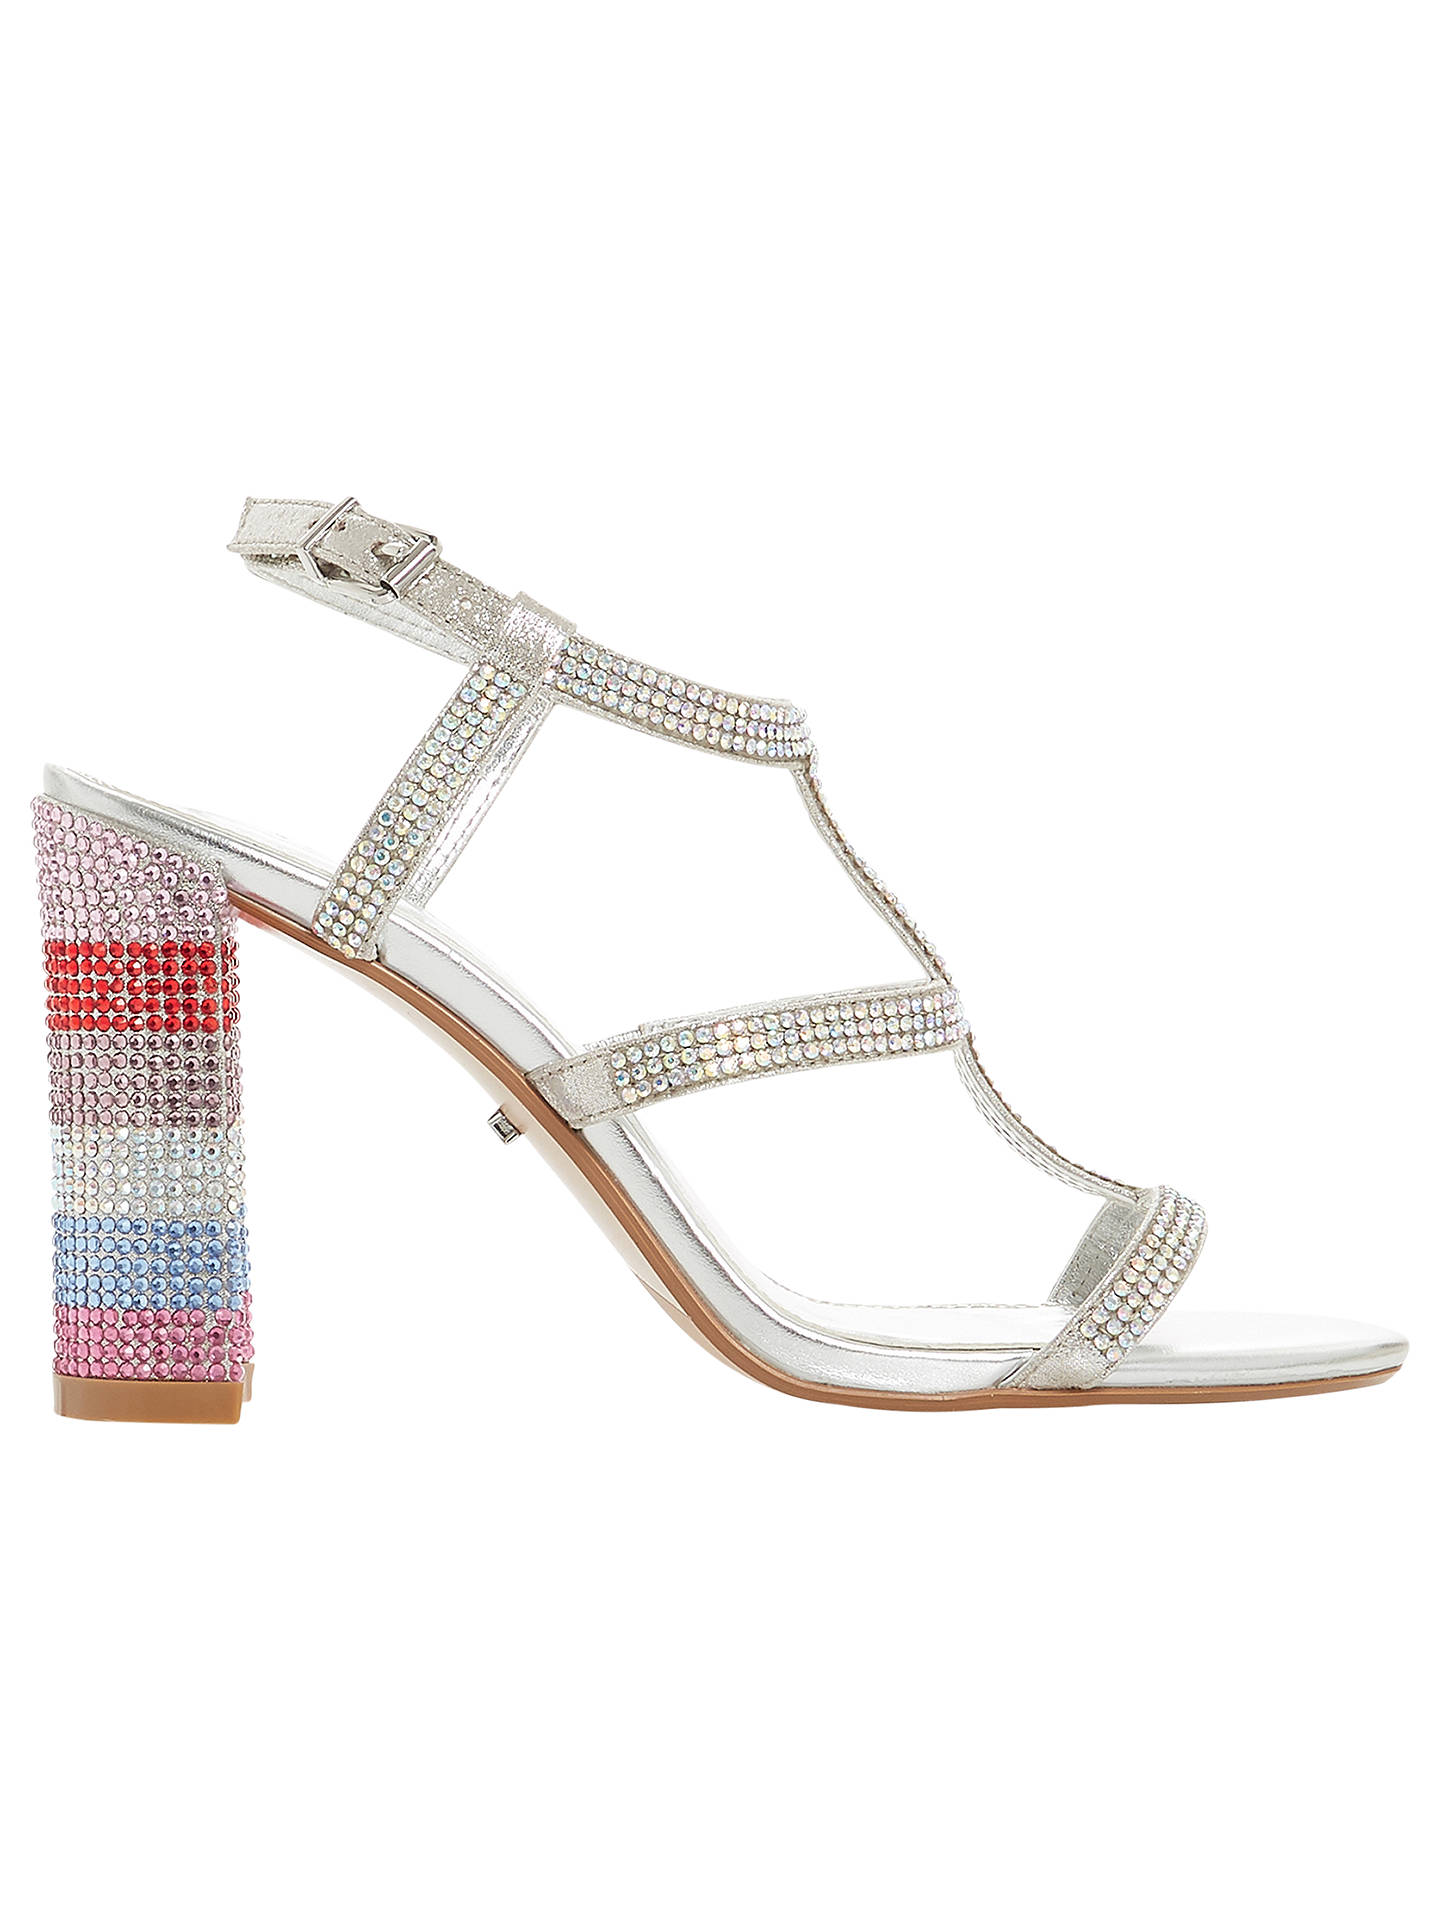 2c75f39d543 Buy Dune Marisole Diamante Encrusted Block Heel Sandals